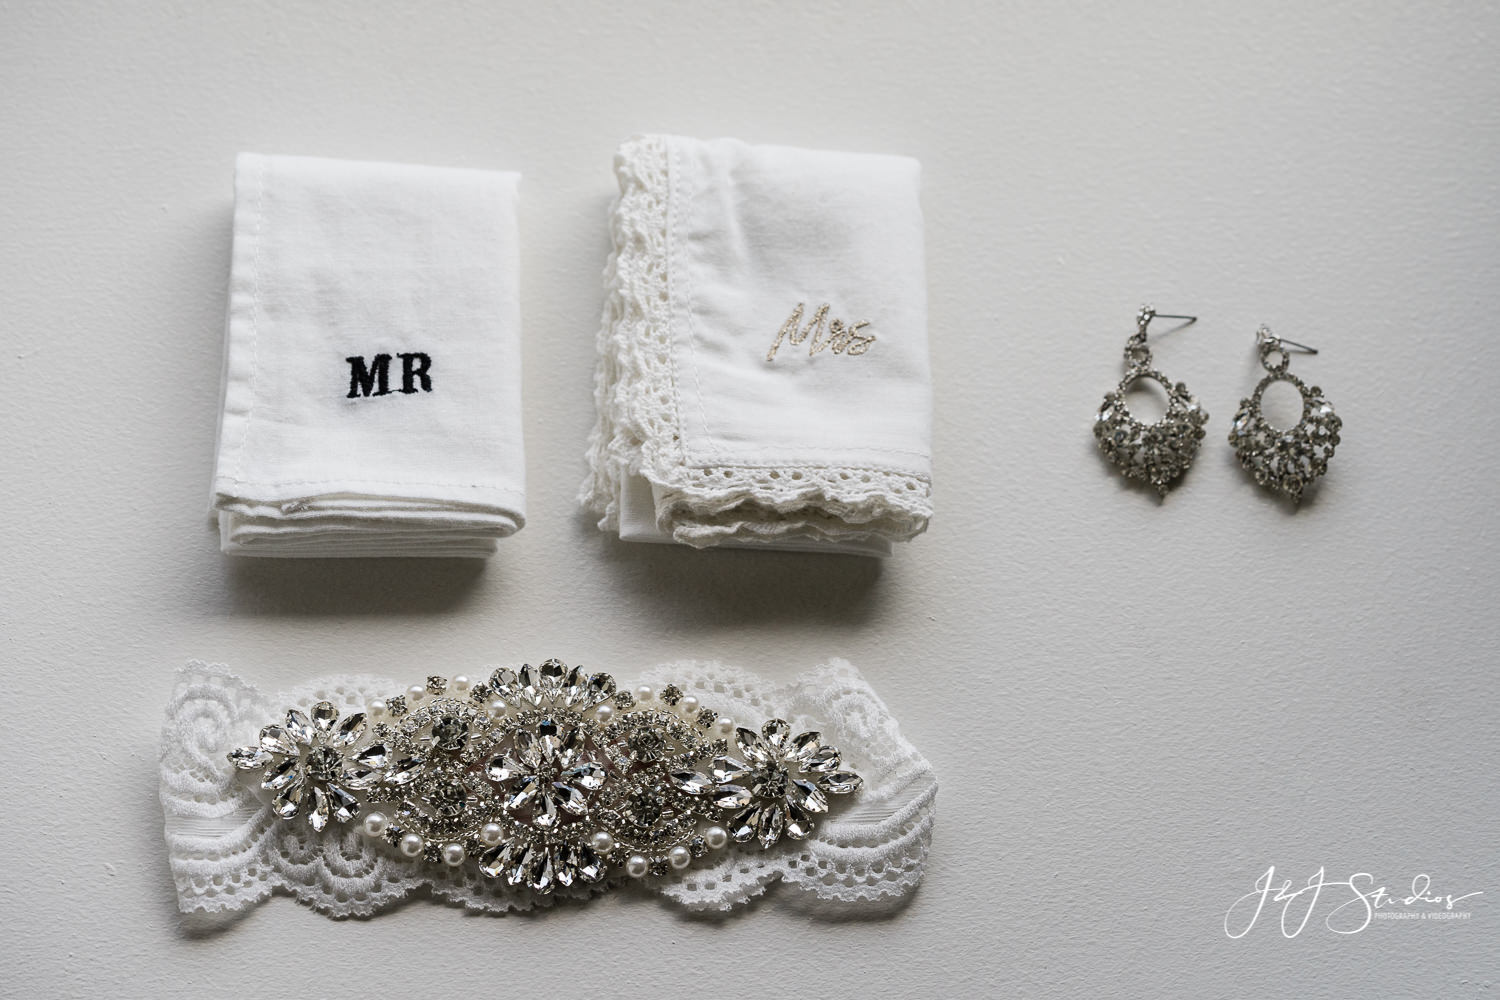 embroidered garter and handkerchief